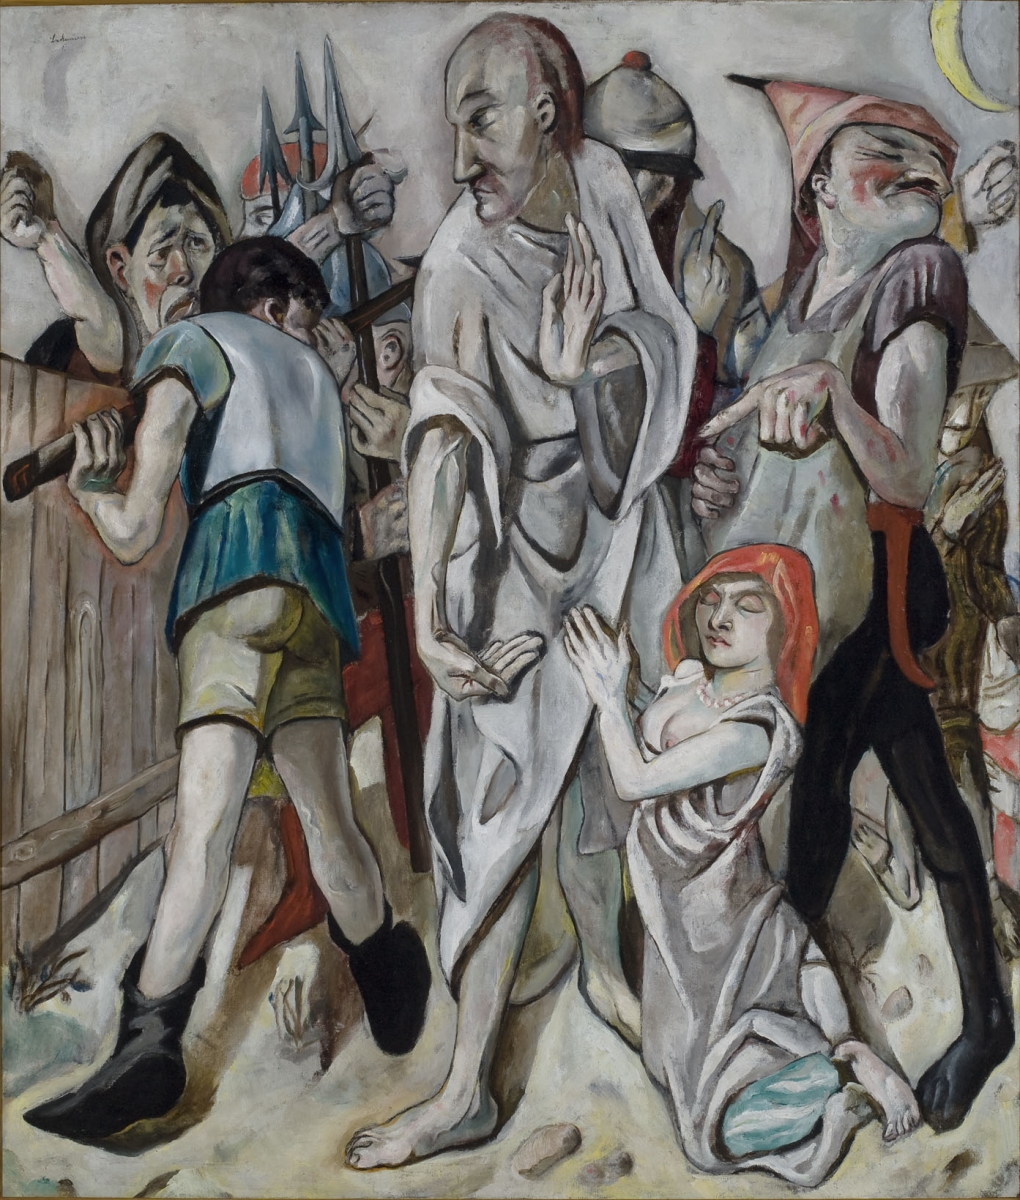 Max Beckmann, Christ and the Woman Taken in Adultery, 1917.